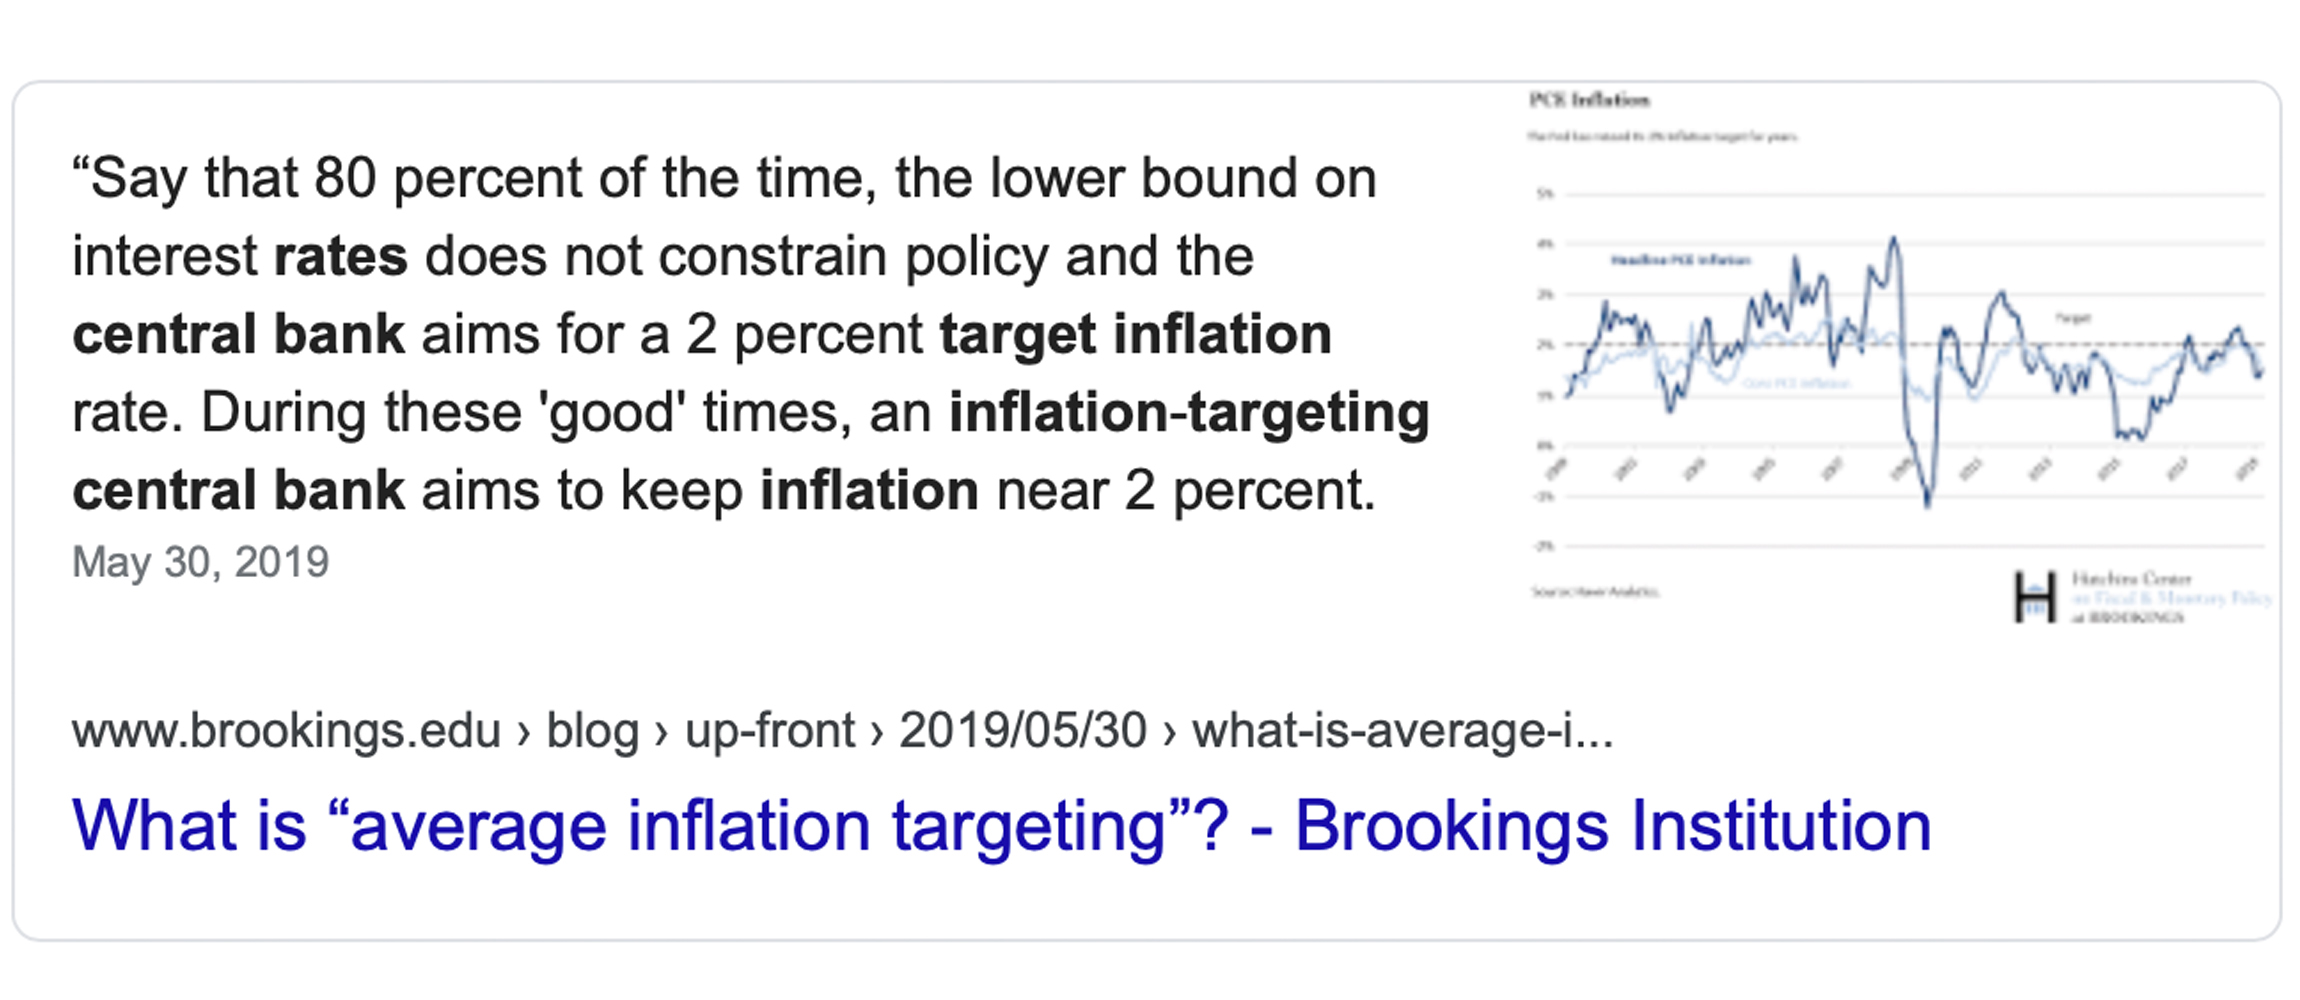 Bitcoin Halving Will Drop Inflation Rate Lower Than Central Banks' 2% Target Reference